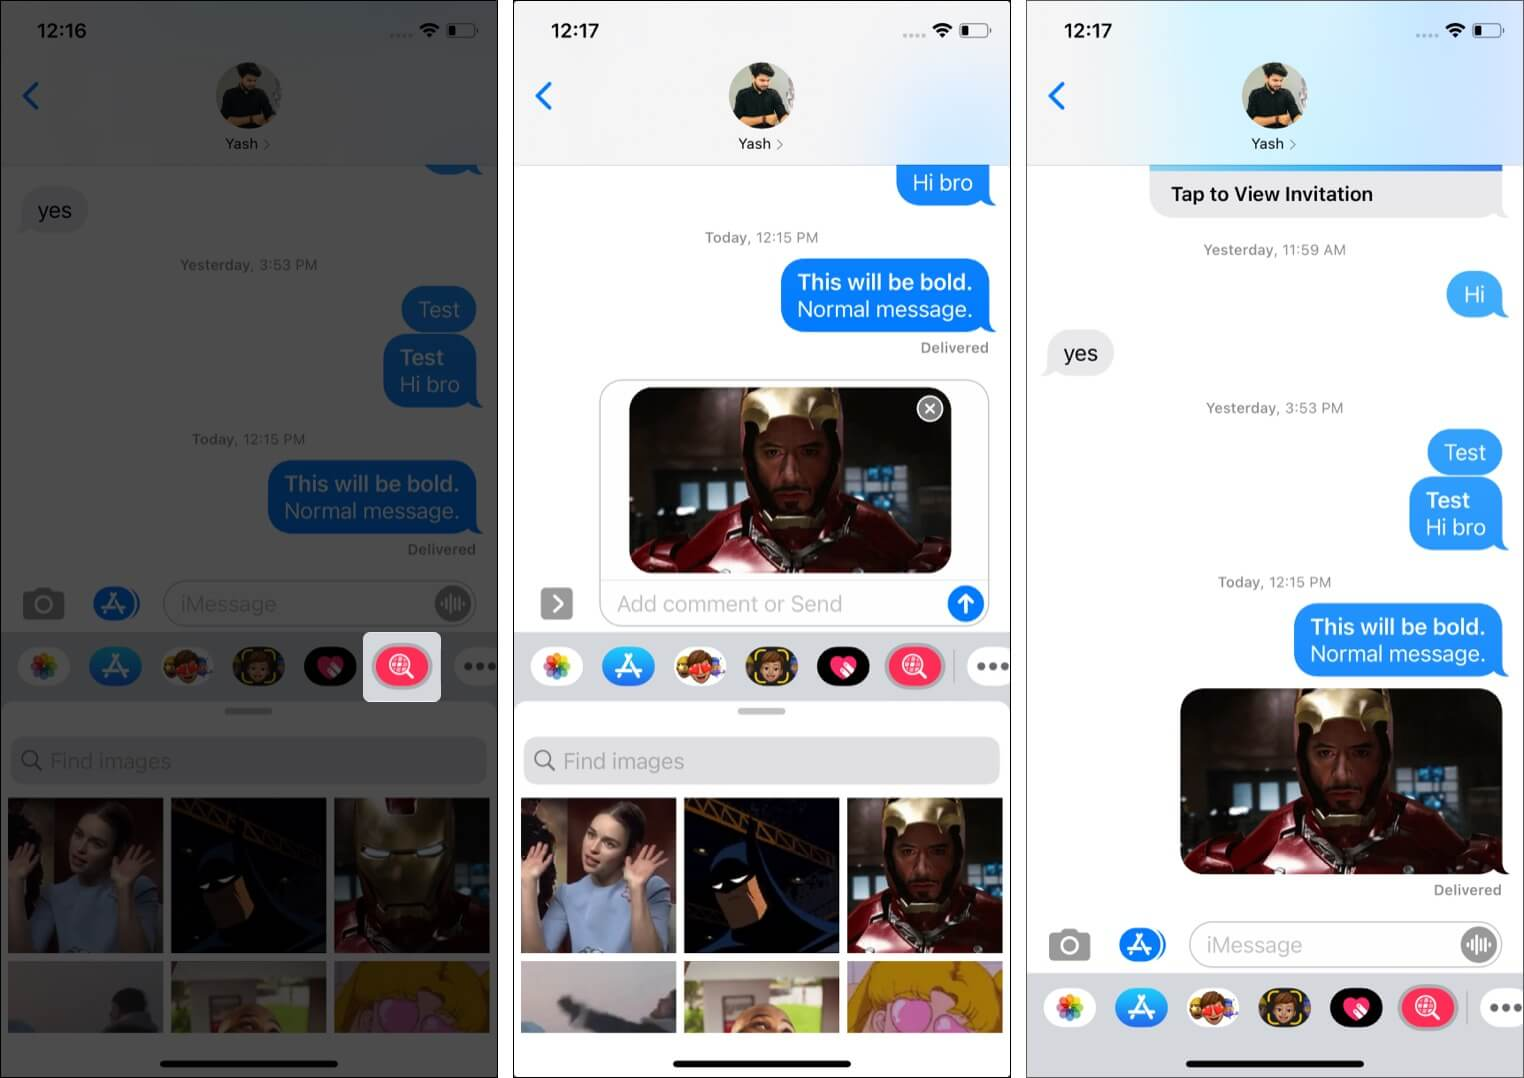 Search and send GIFs directly from iMessage chat screen